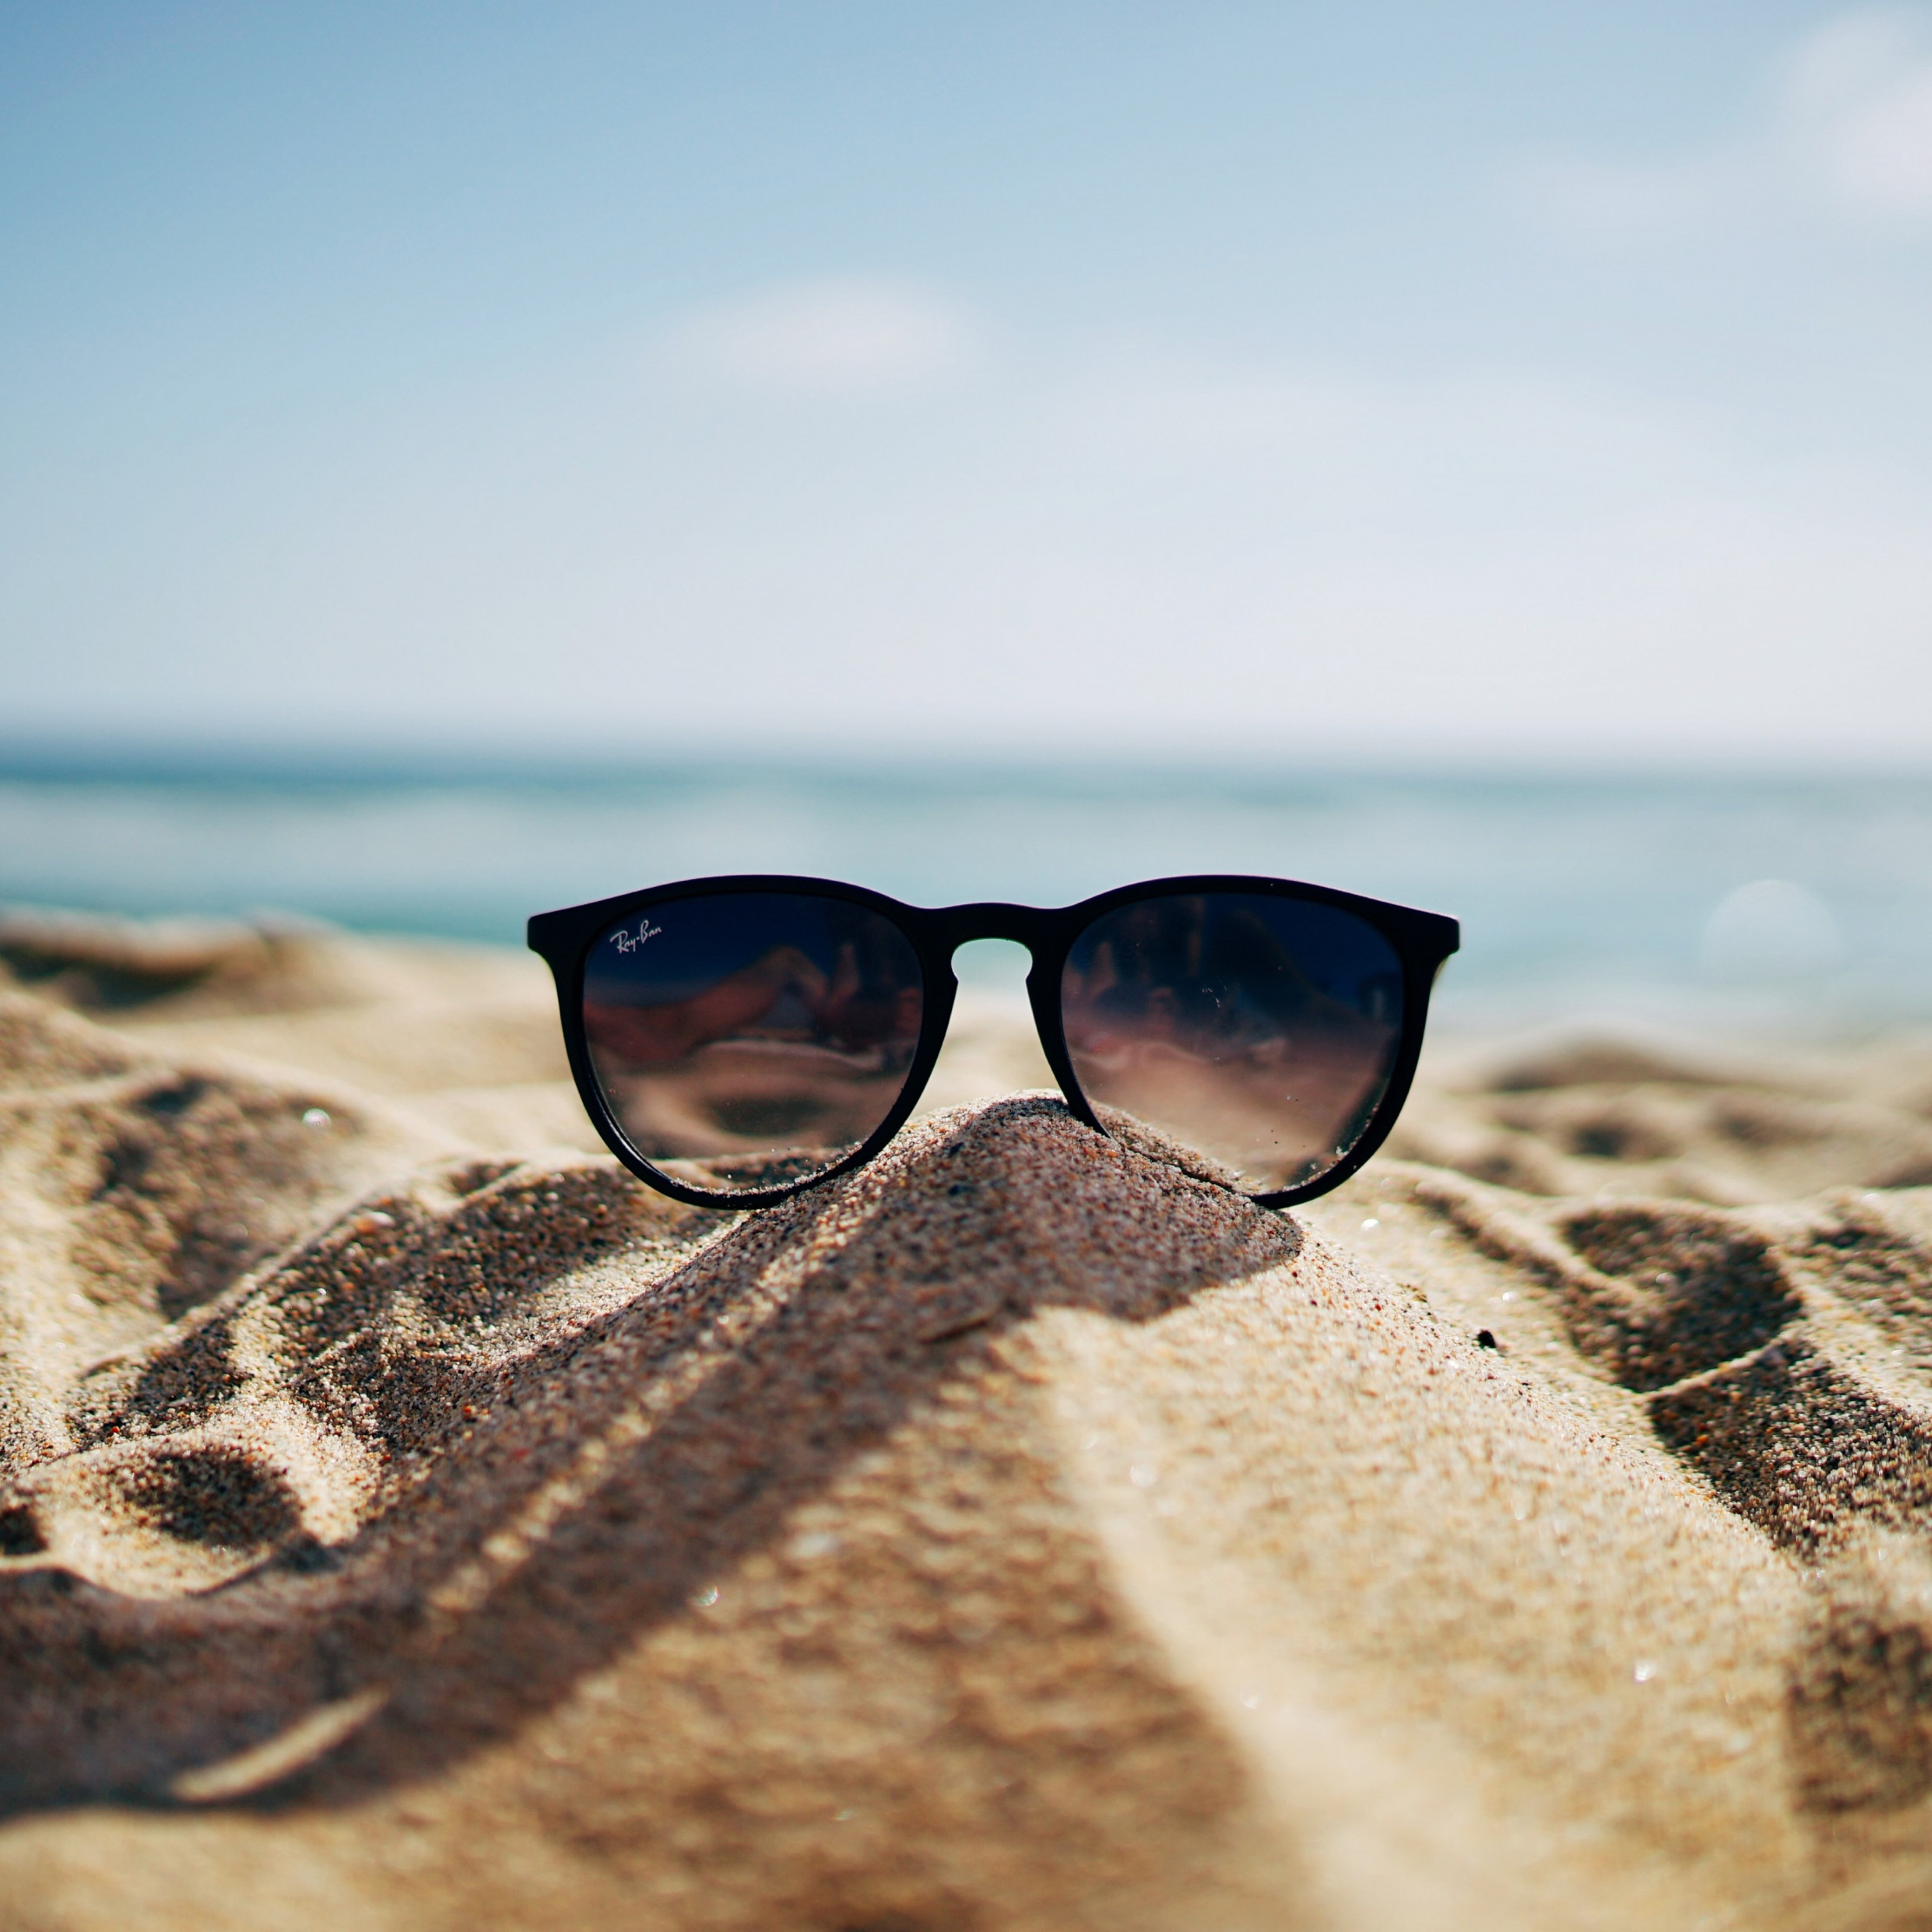 Ray Ban sunglasses on hot sand beach | 2224x2224 wallpaper